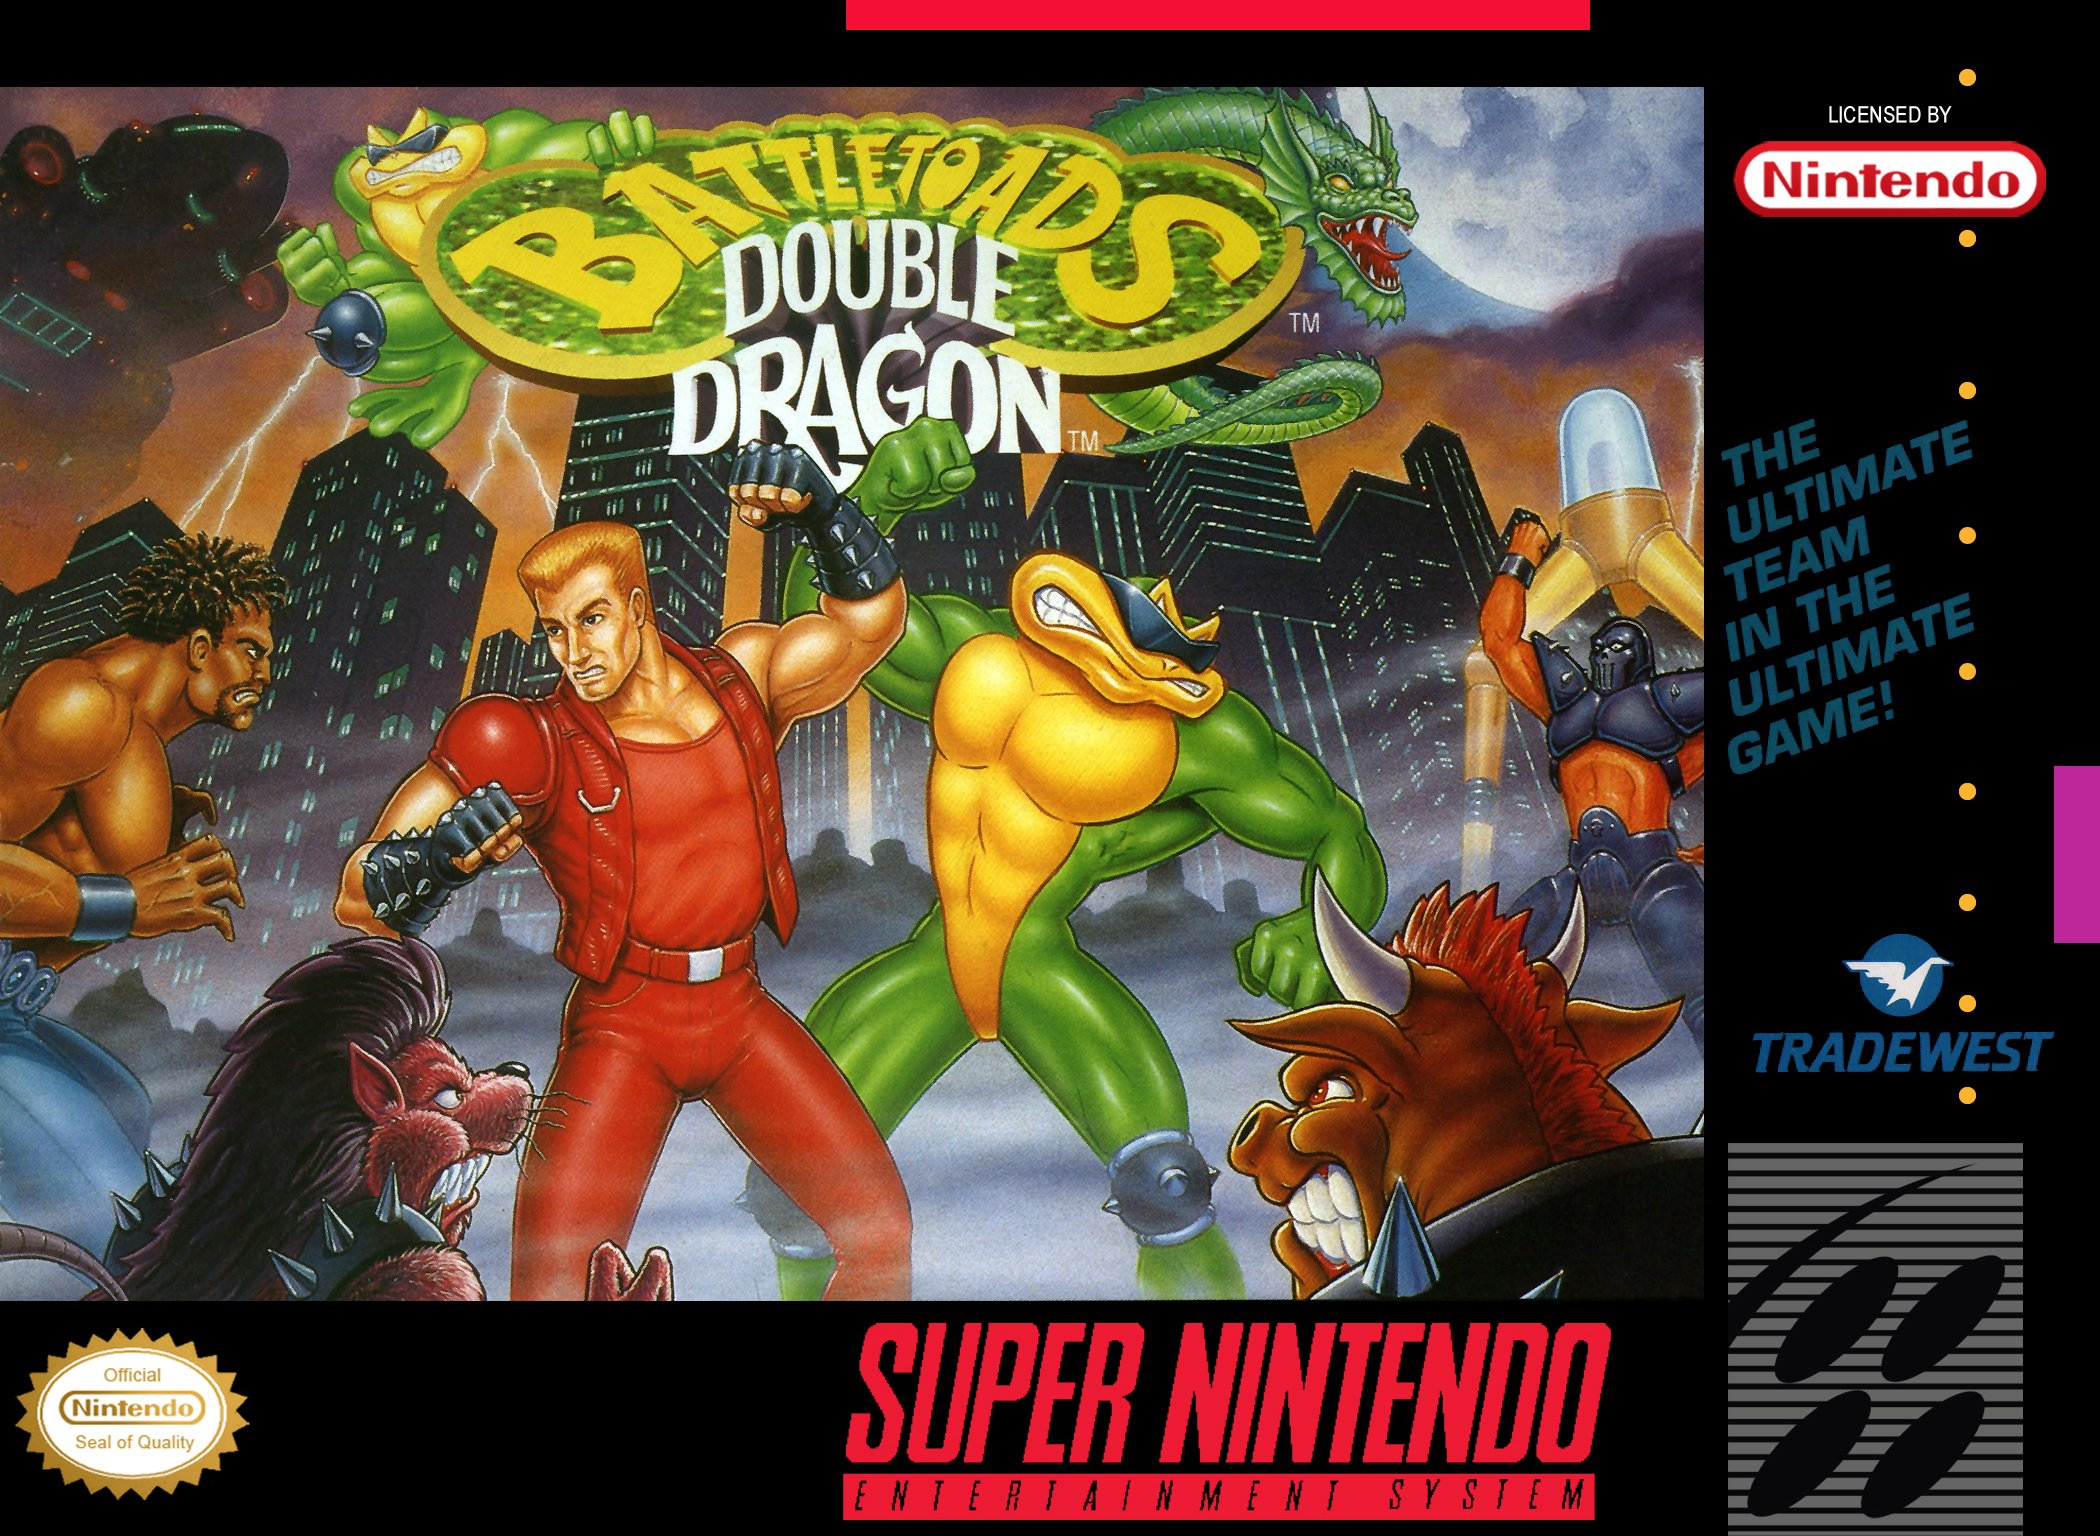 Battletoads & Double Dragon